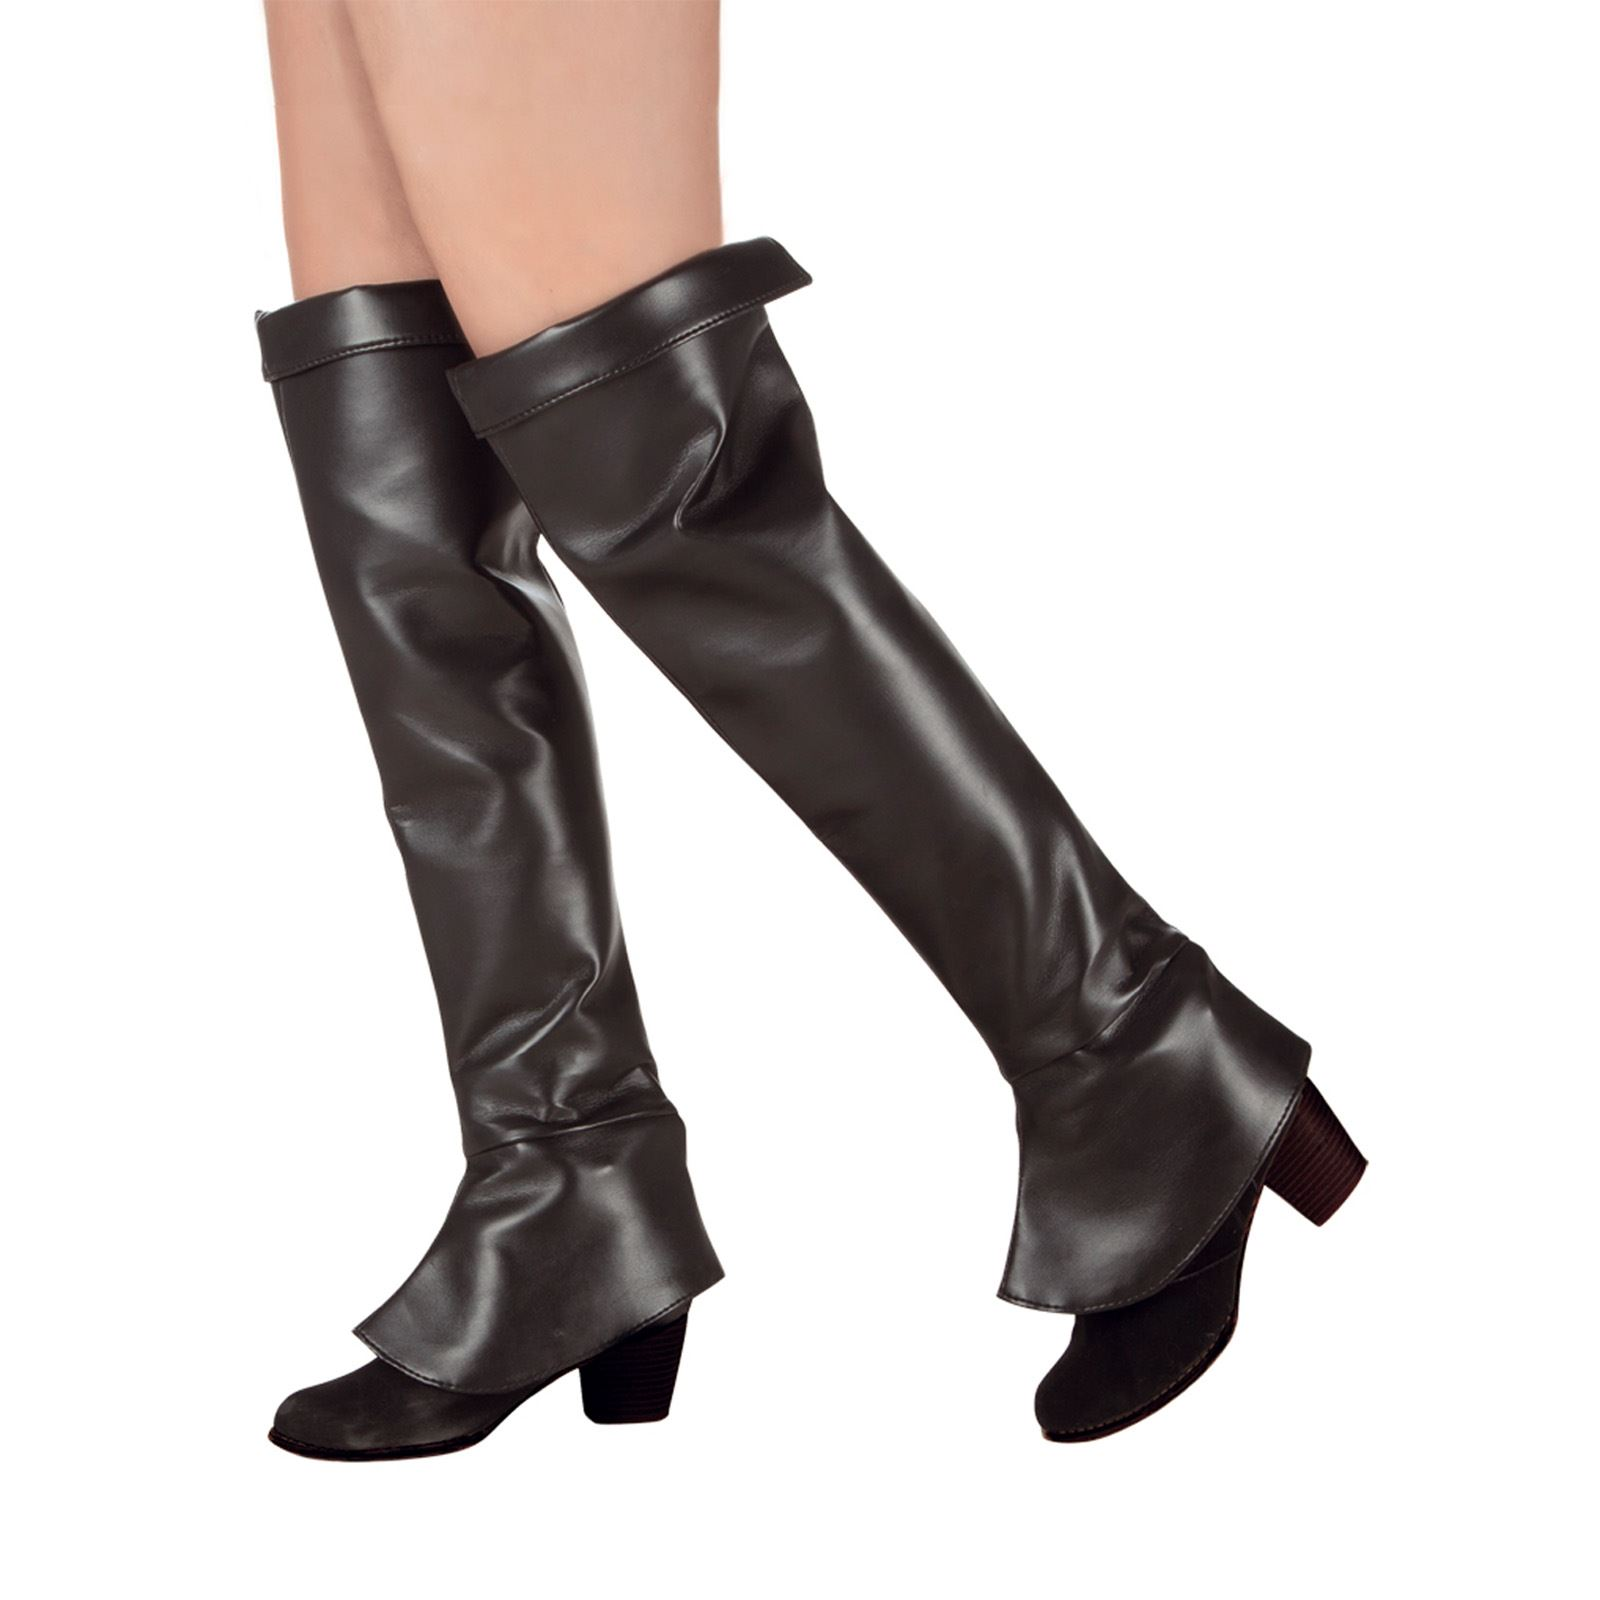 Mens Ladies Black Boot Top Covers Medieval Peter Pan Pirate Steam Punk Costume; Picture 2 of 2  sc 1 st  eBay & Ladies Long Black Medieval Pirate Superhero Fancy Dress Costume Boot ...